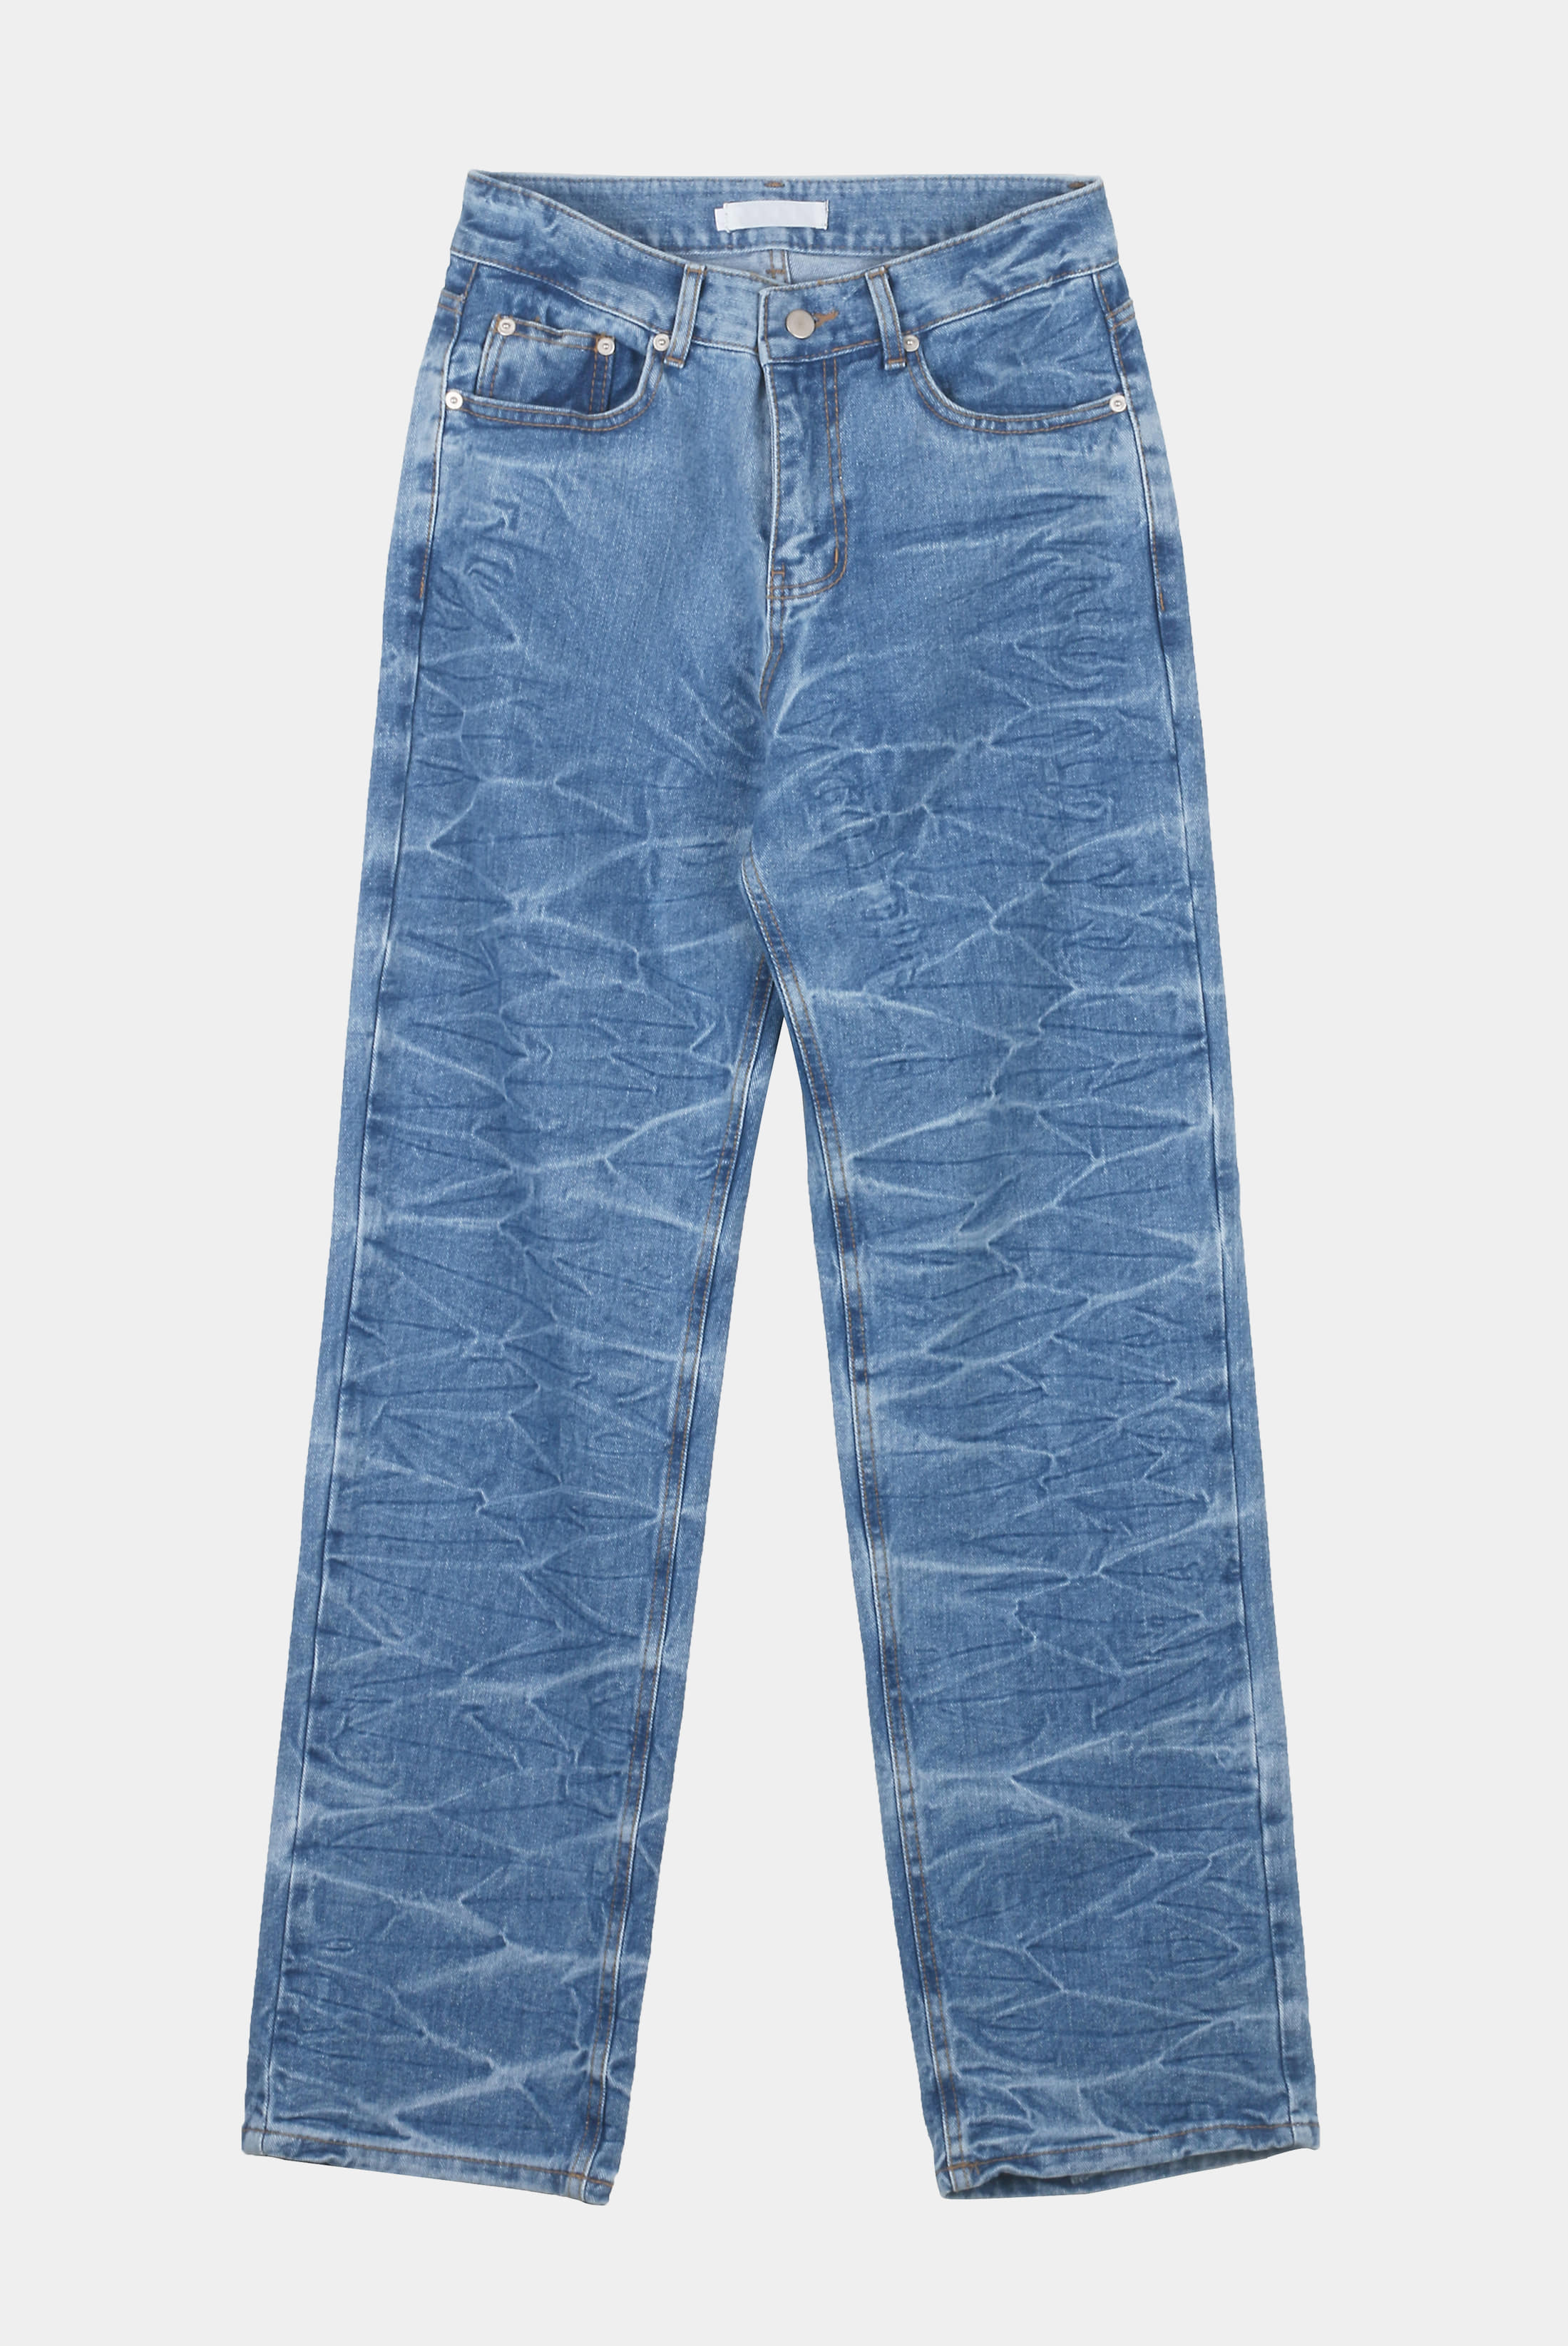 Wave_Crack Denim_Pants